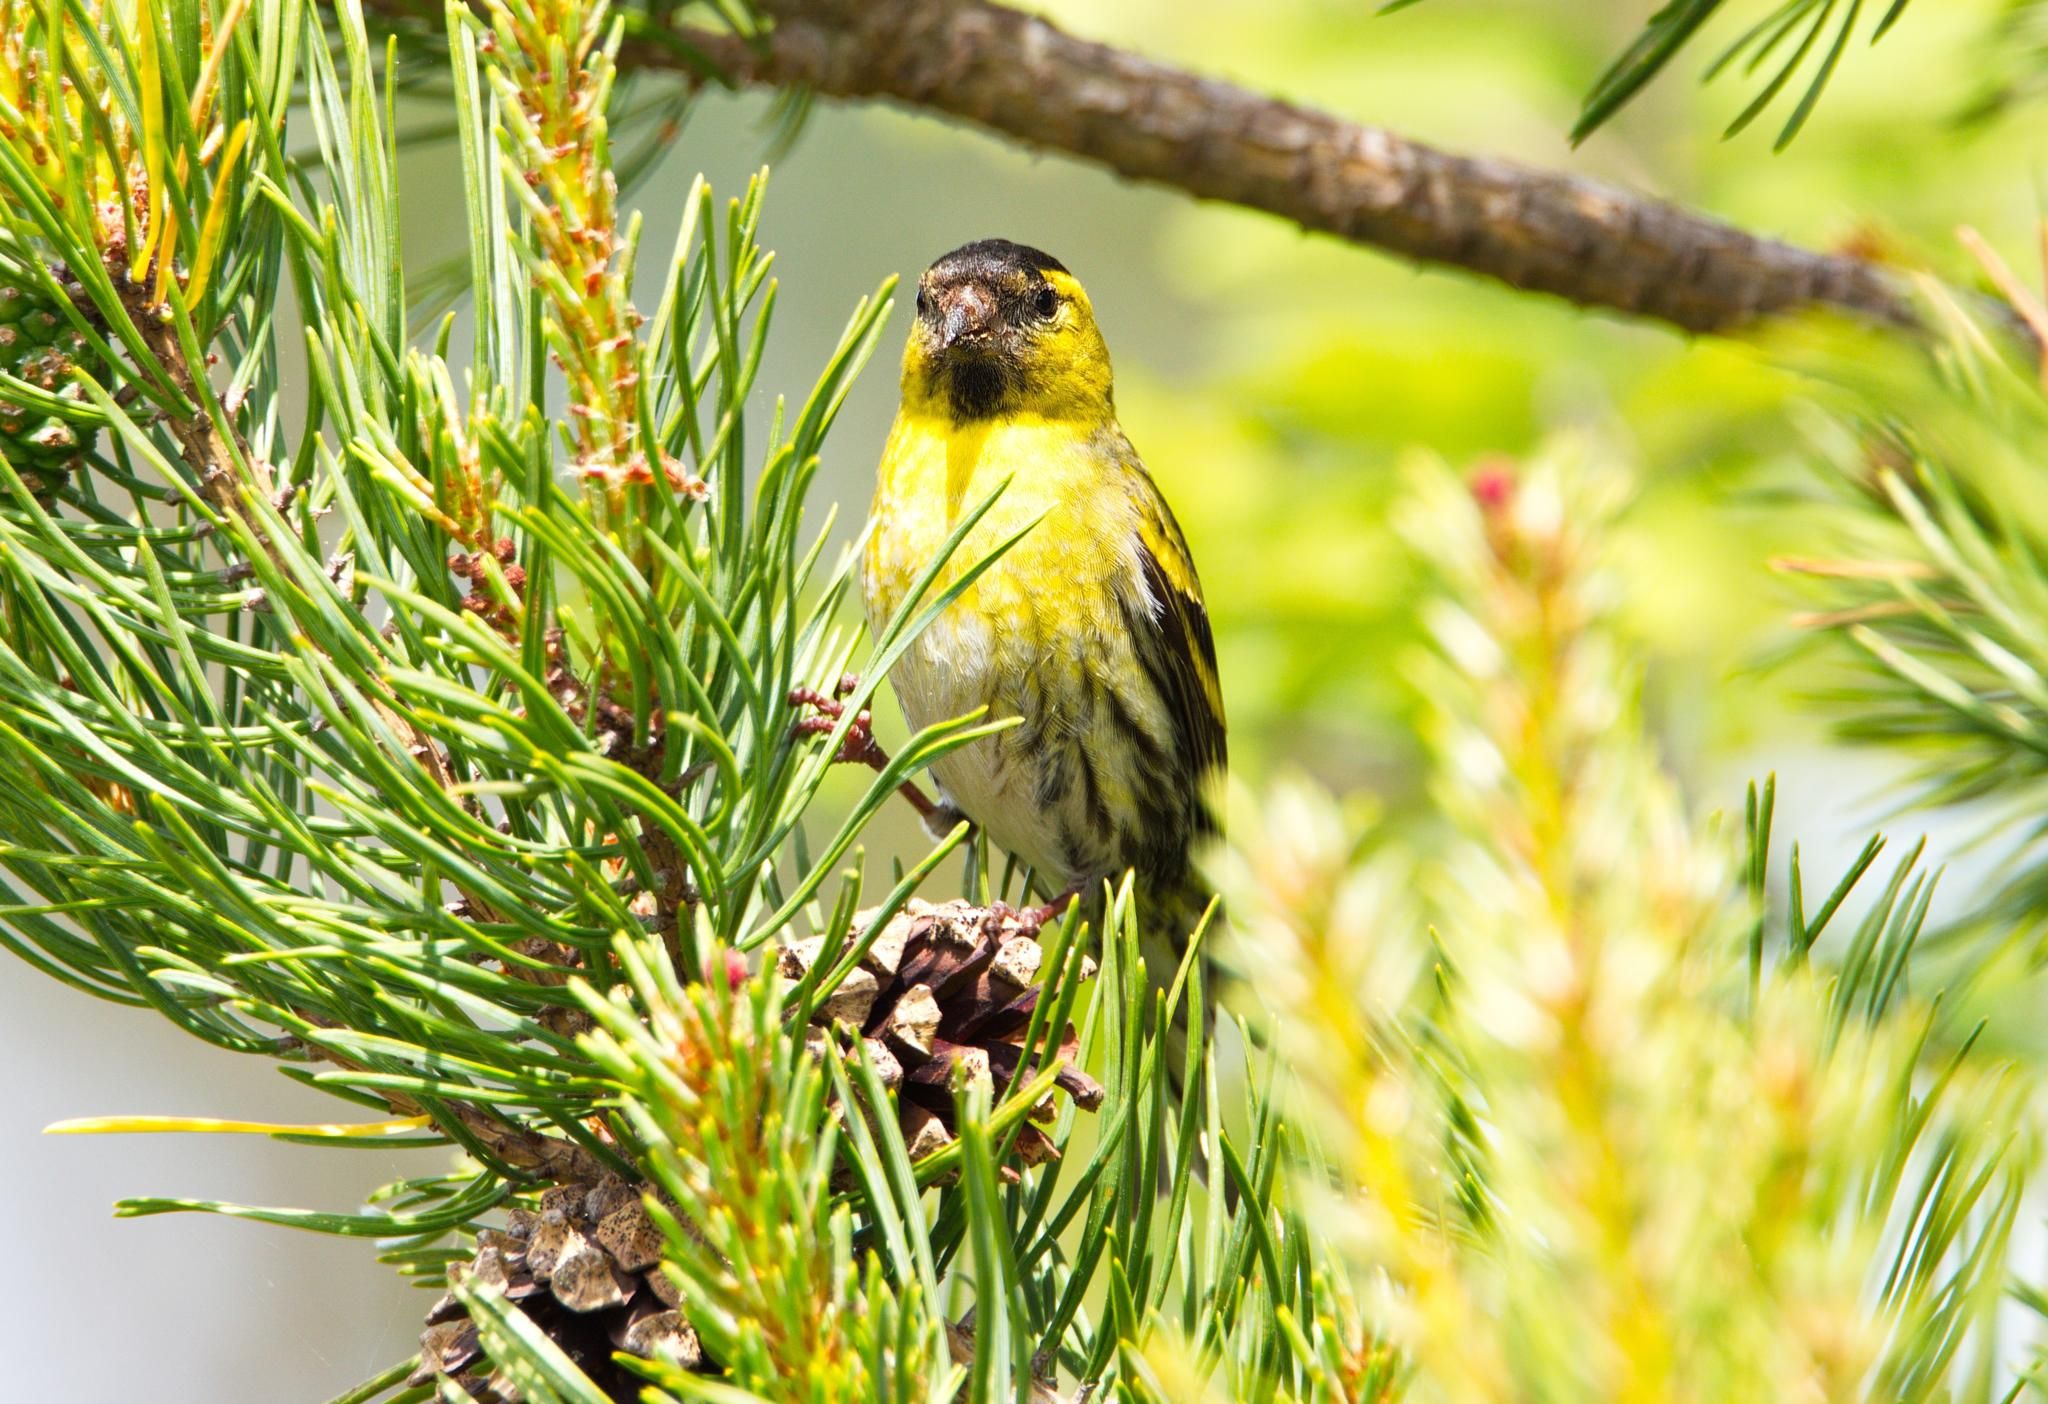 Greenfinch in the sun by Stian Olaisen